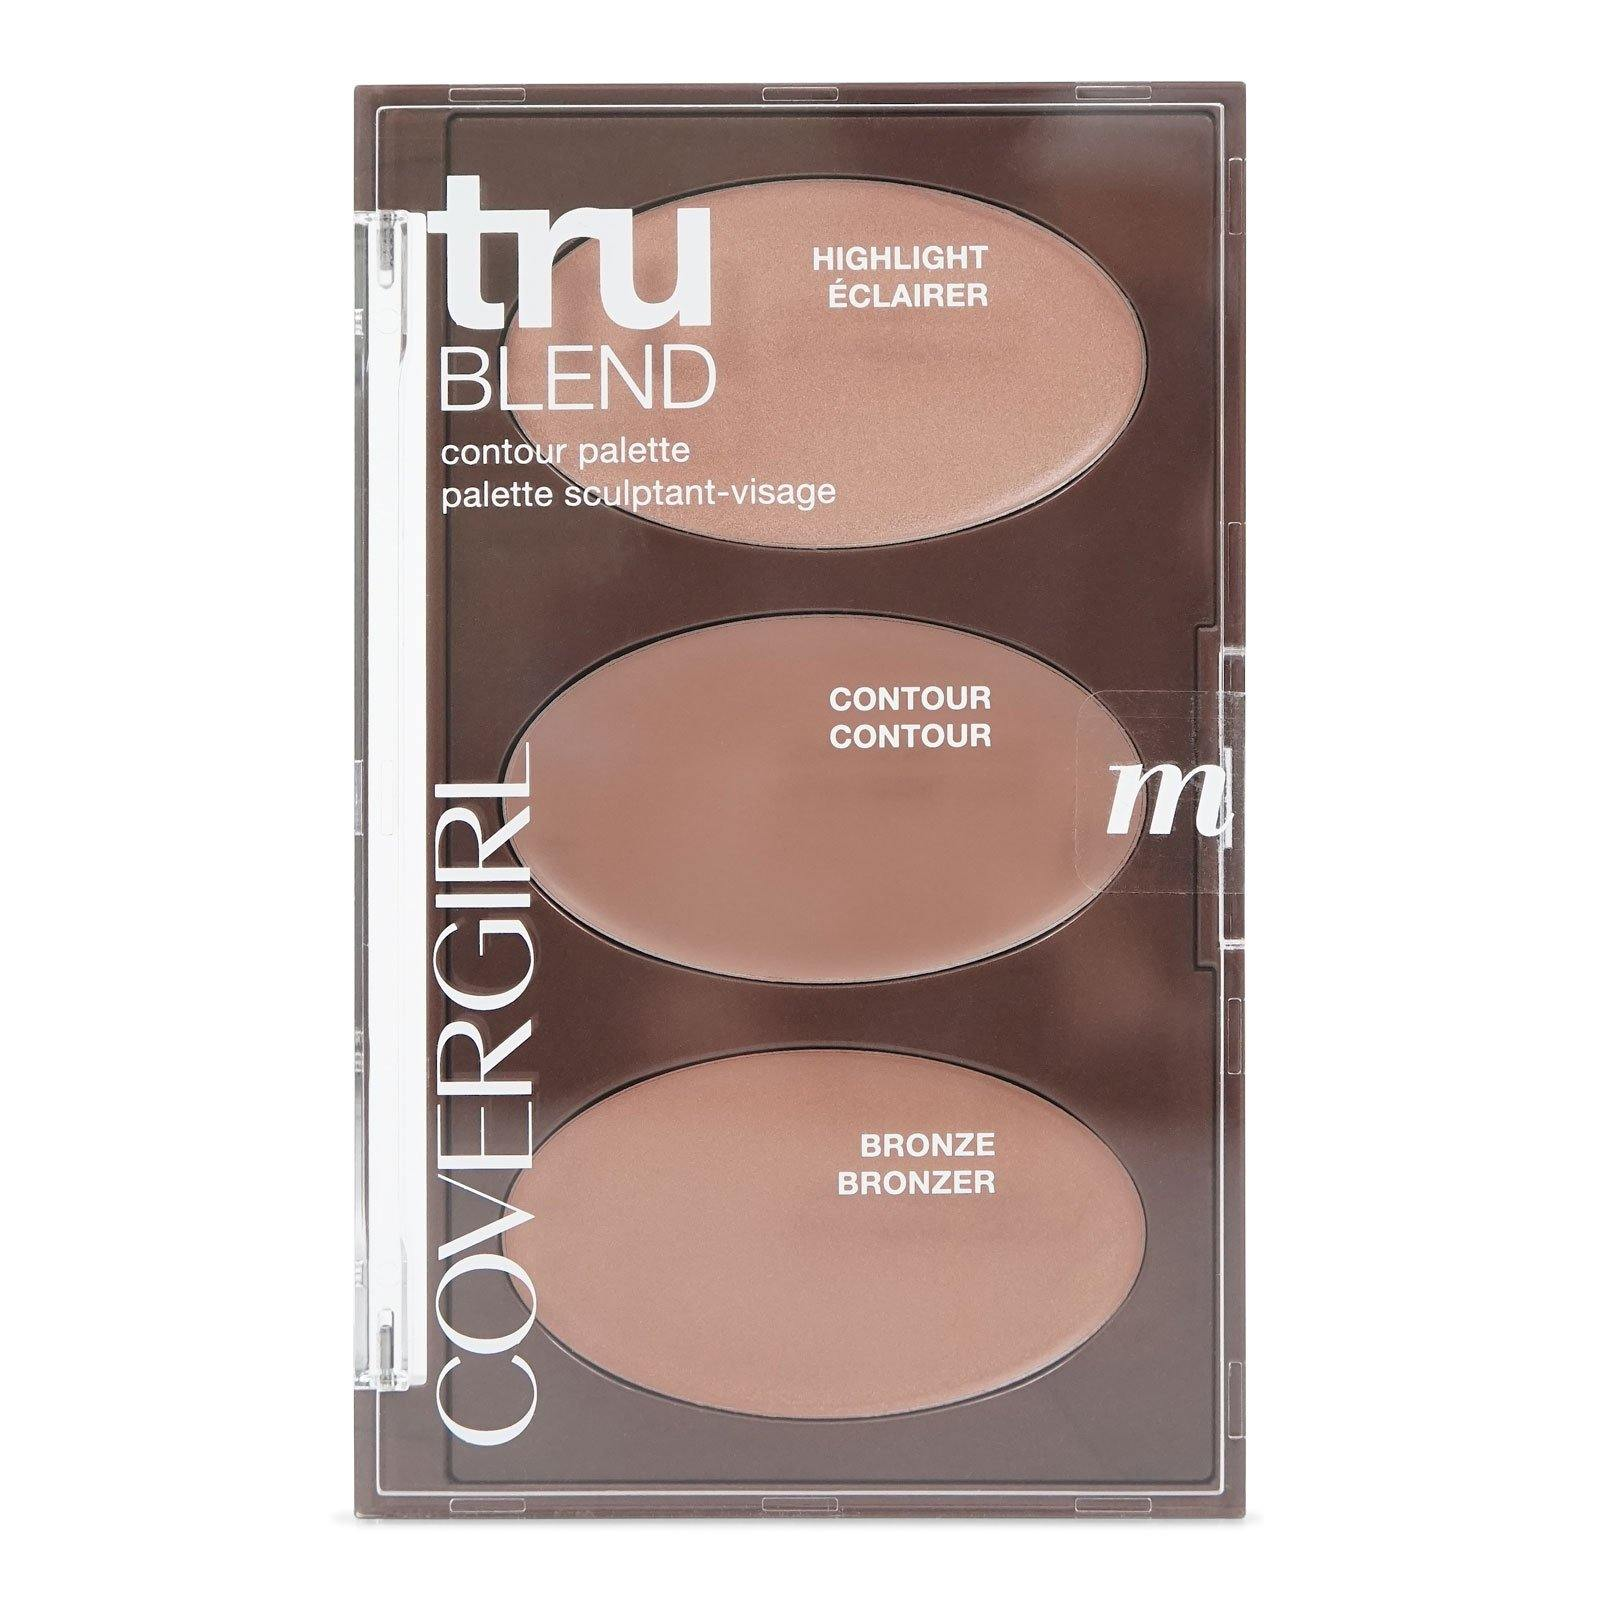 COVERGIRL TRUBLEND CONTOUR PALETTE - MEDIUM (24/cs)